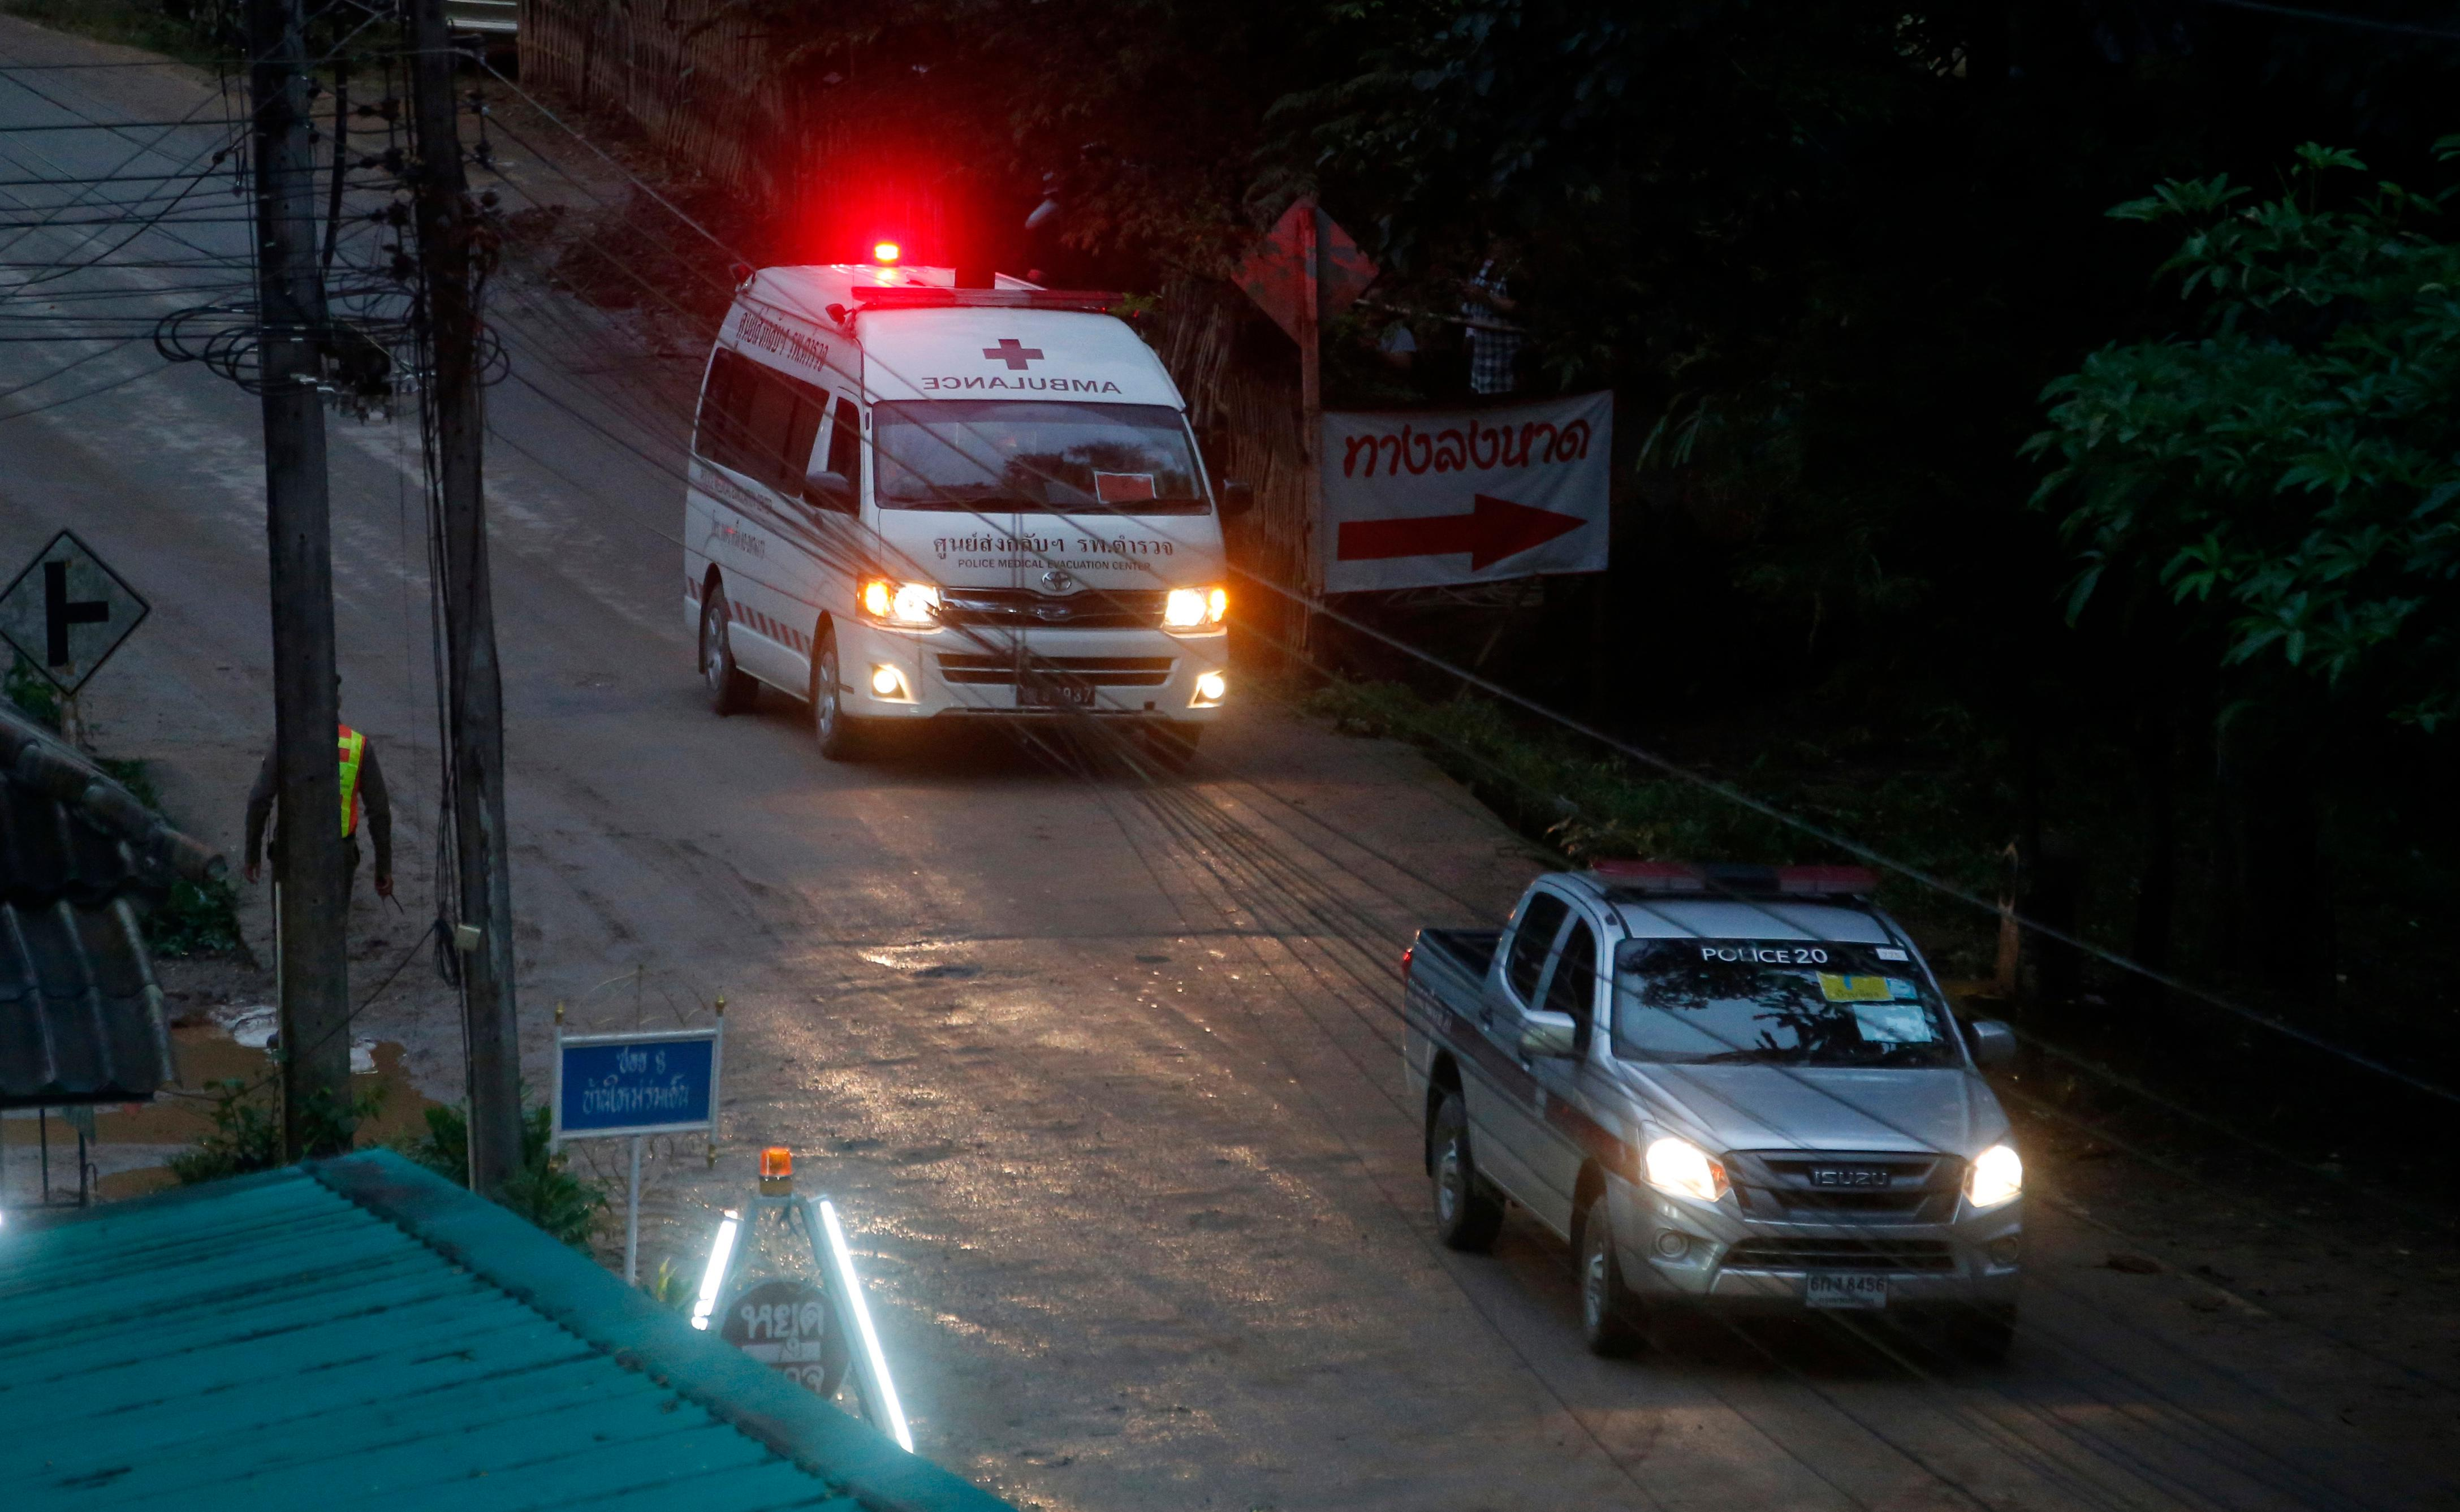 One of two ambulances leave the cave in northern Thailand hours after operation began to rescue the trapped youth soccer players and their coach, in Mae Sai, Chiang Rai province, in northern Thailand, Sunday, July 8, 2018.  Chiang Rai province acting Gov. Narongsak Osatanakorn, who is heading the operation, said earlier Sunday that 13 foreign and five Thai divers were taking part in the rescue and two divers will accompany each boy as they're gradually extracted. He said the operation began at 10 a.m., and it will take at least 11 hours for the first person to be taken out of the cave. (AP Photo/Sakchai Lalit)